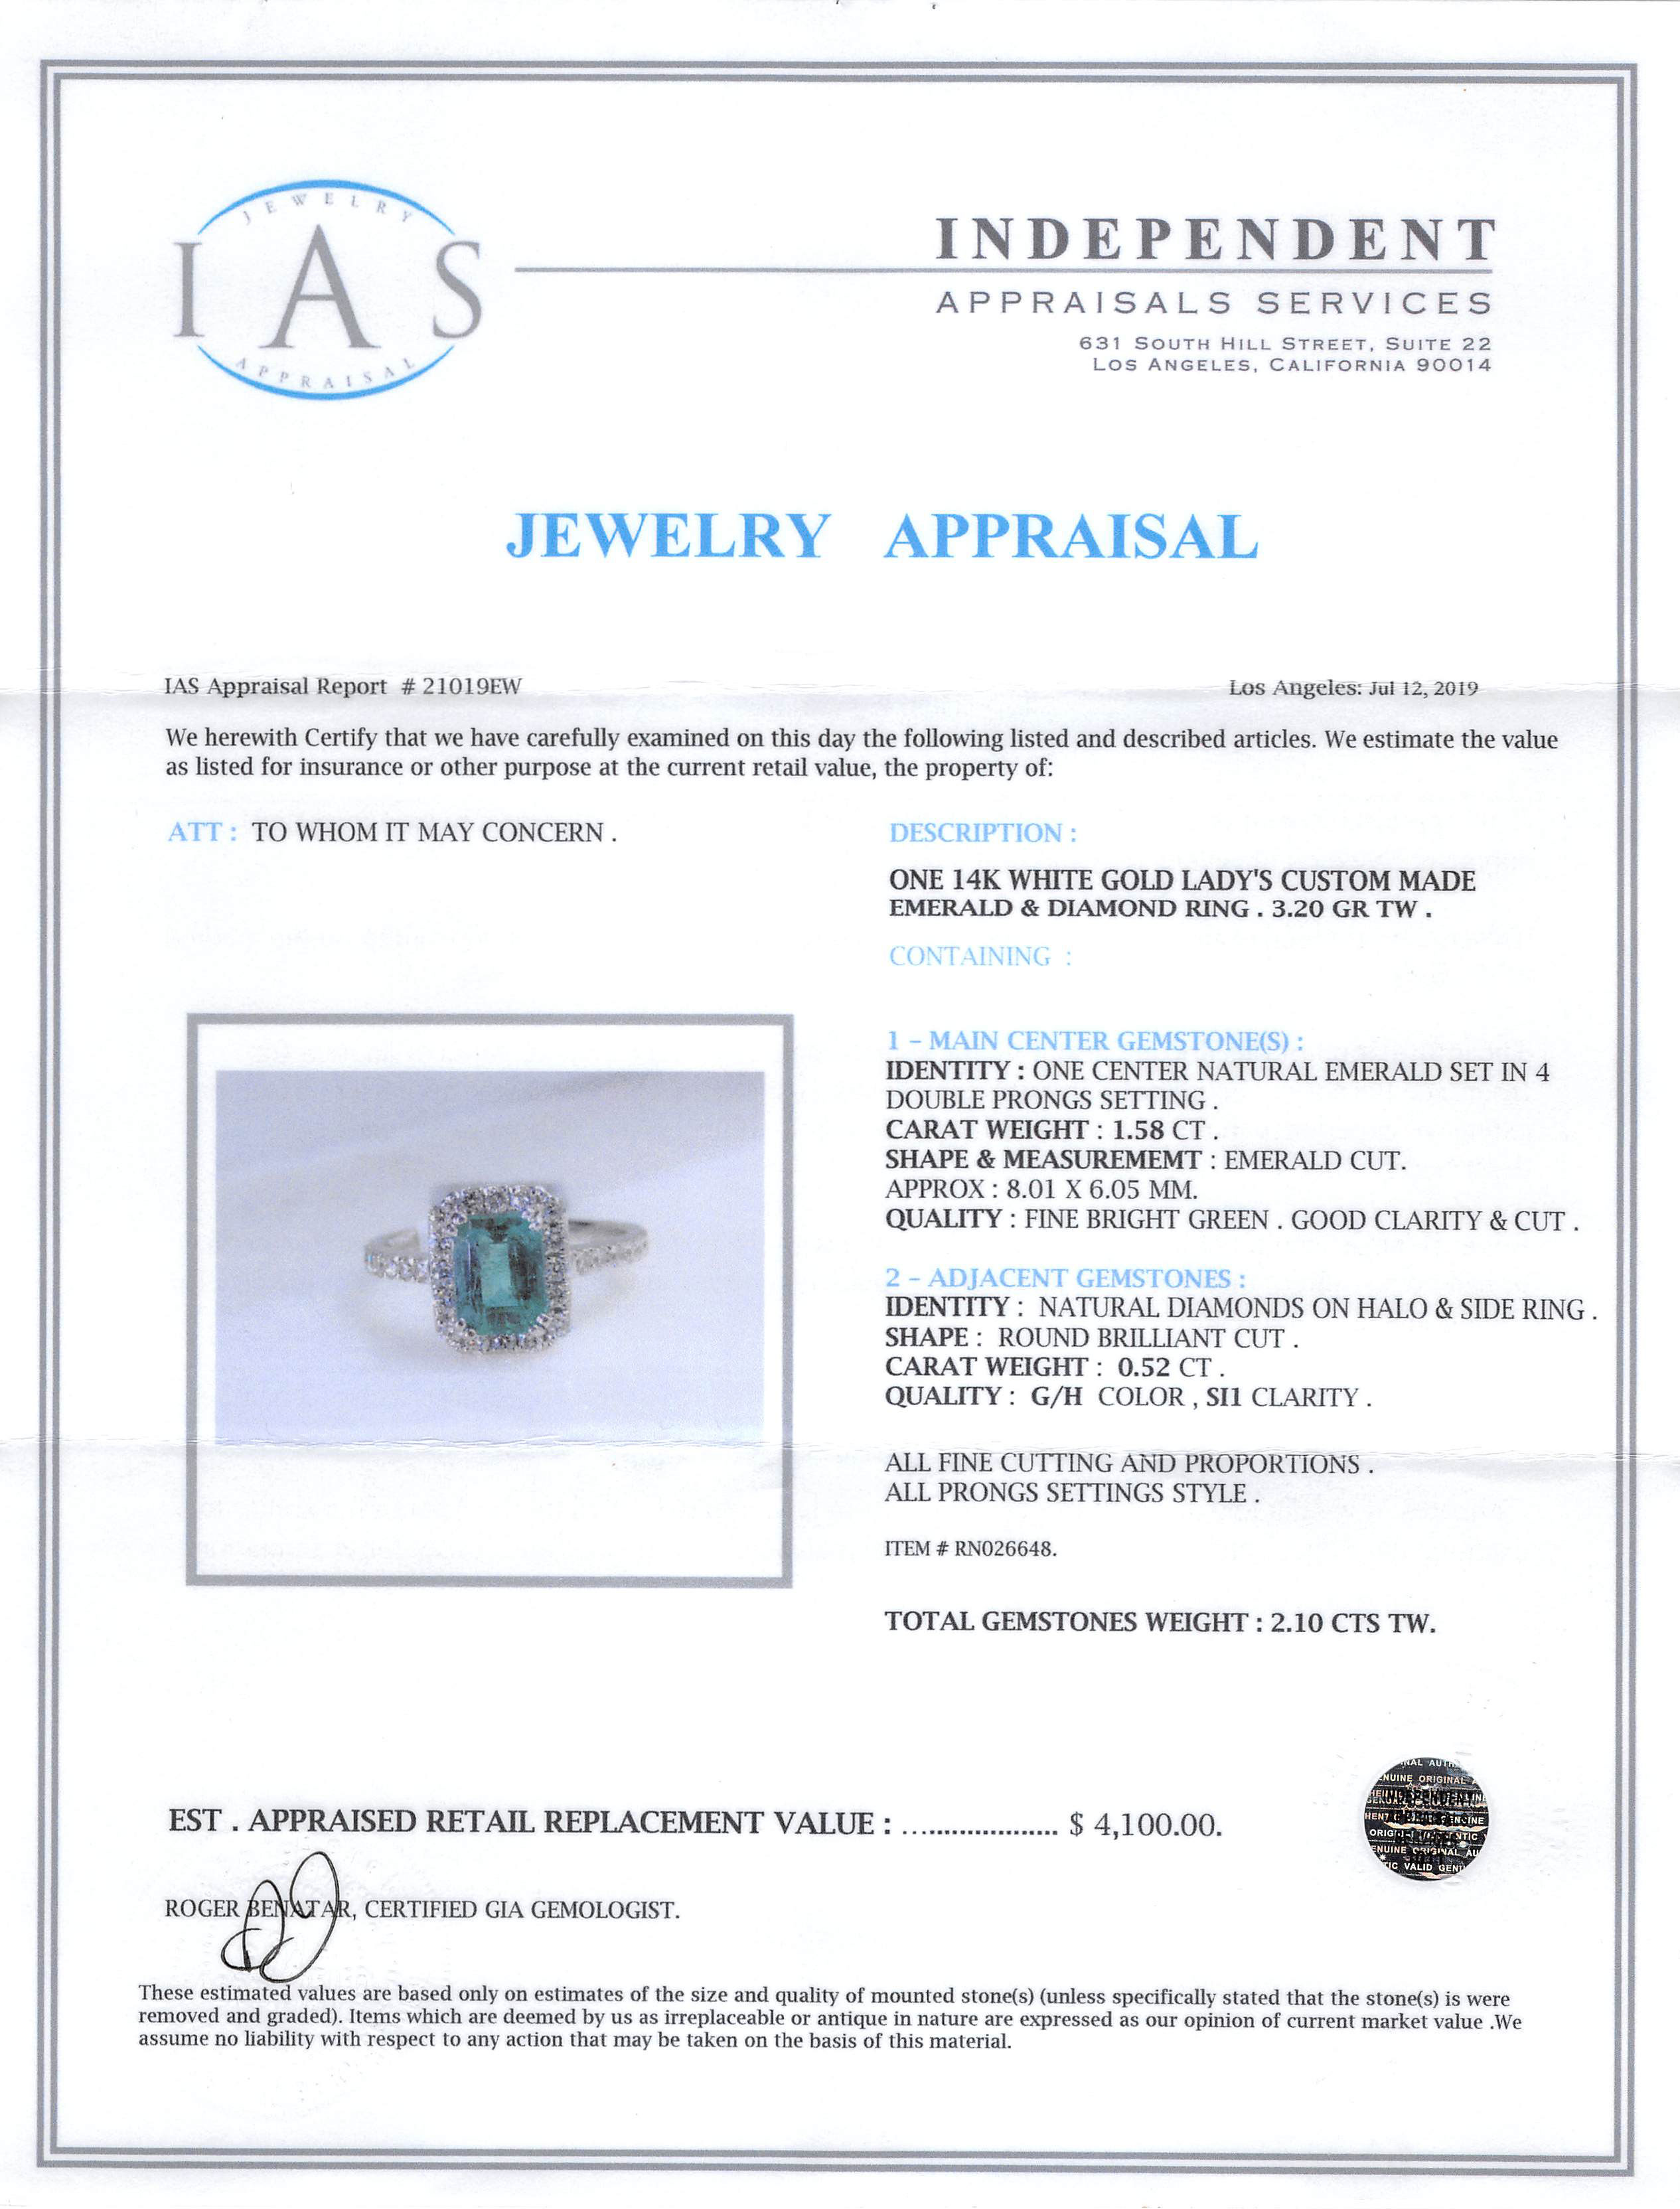 Lot 586 - 14 kt. White Gold, Emerald and Diamond Ring , prong set emerald cut emerald, approx. 8.01 x 6.05 mm,